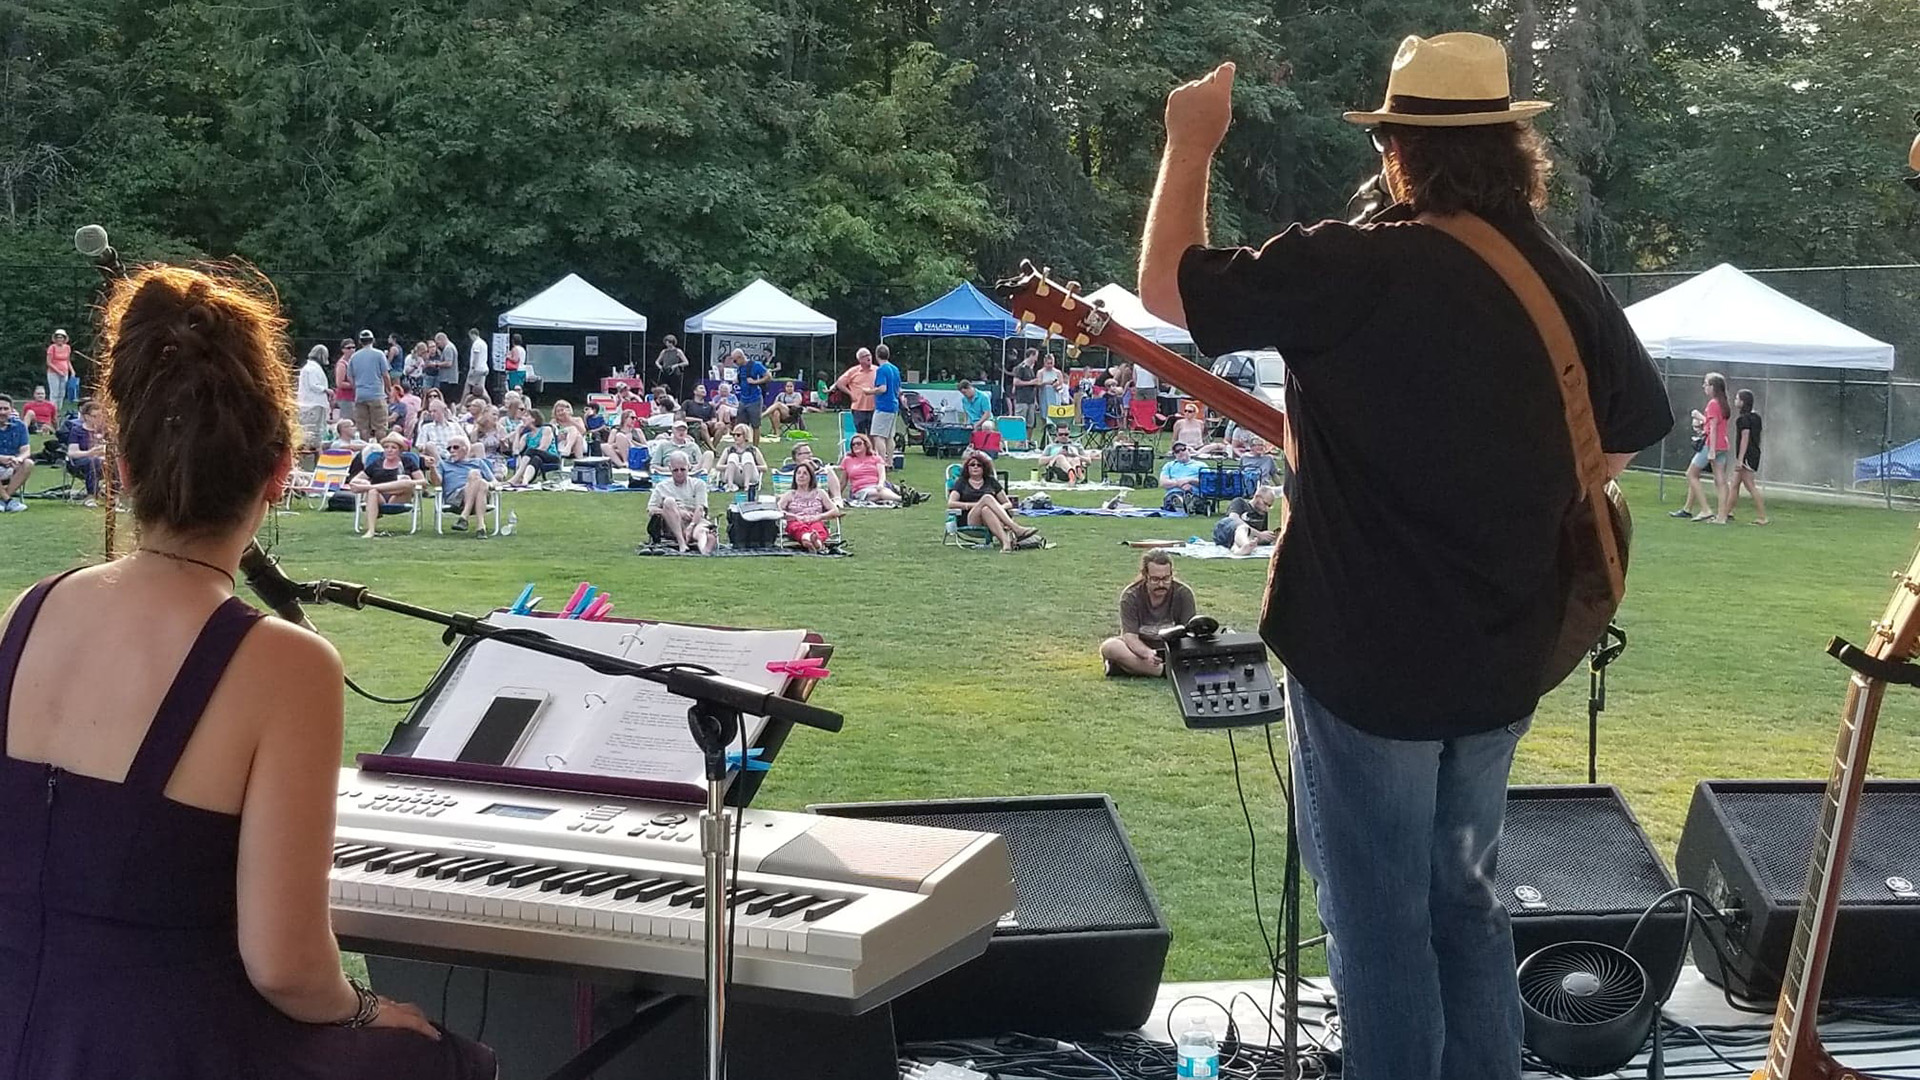 Mark Seymour and Haley Michelle at Tualatin Hills Parks and Recreation Summer Concert Series in Tualatin Oregon